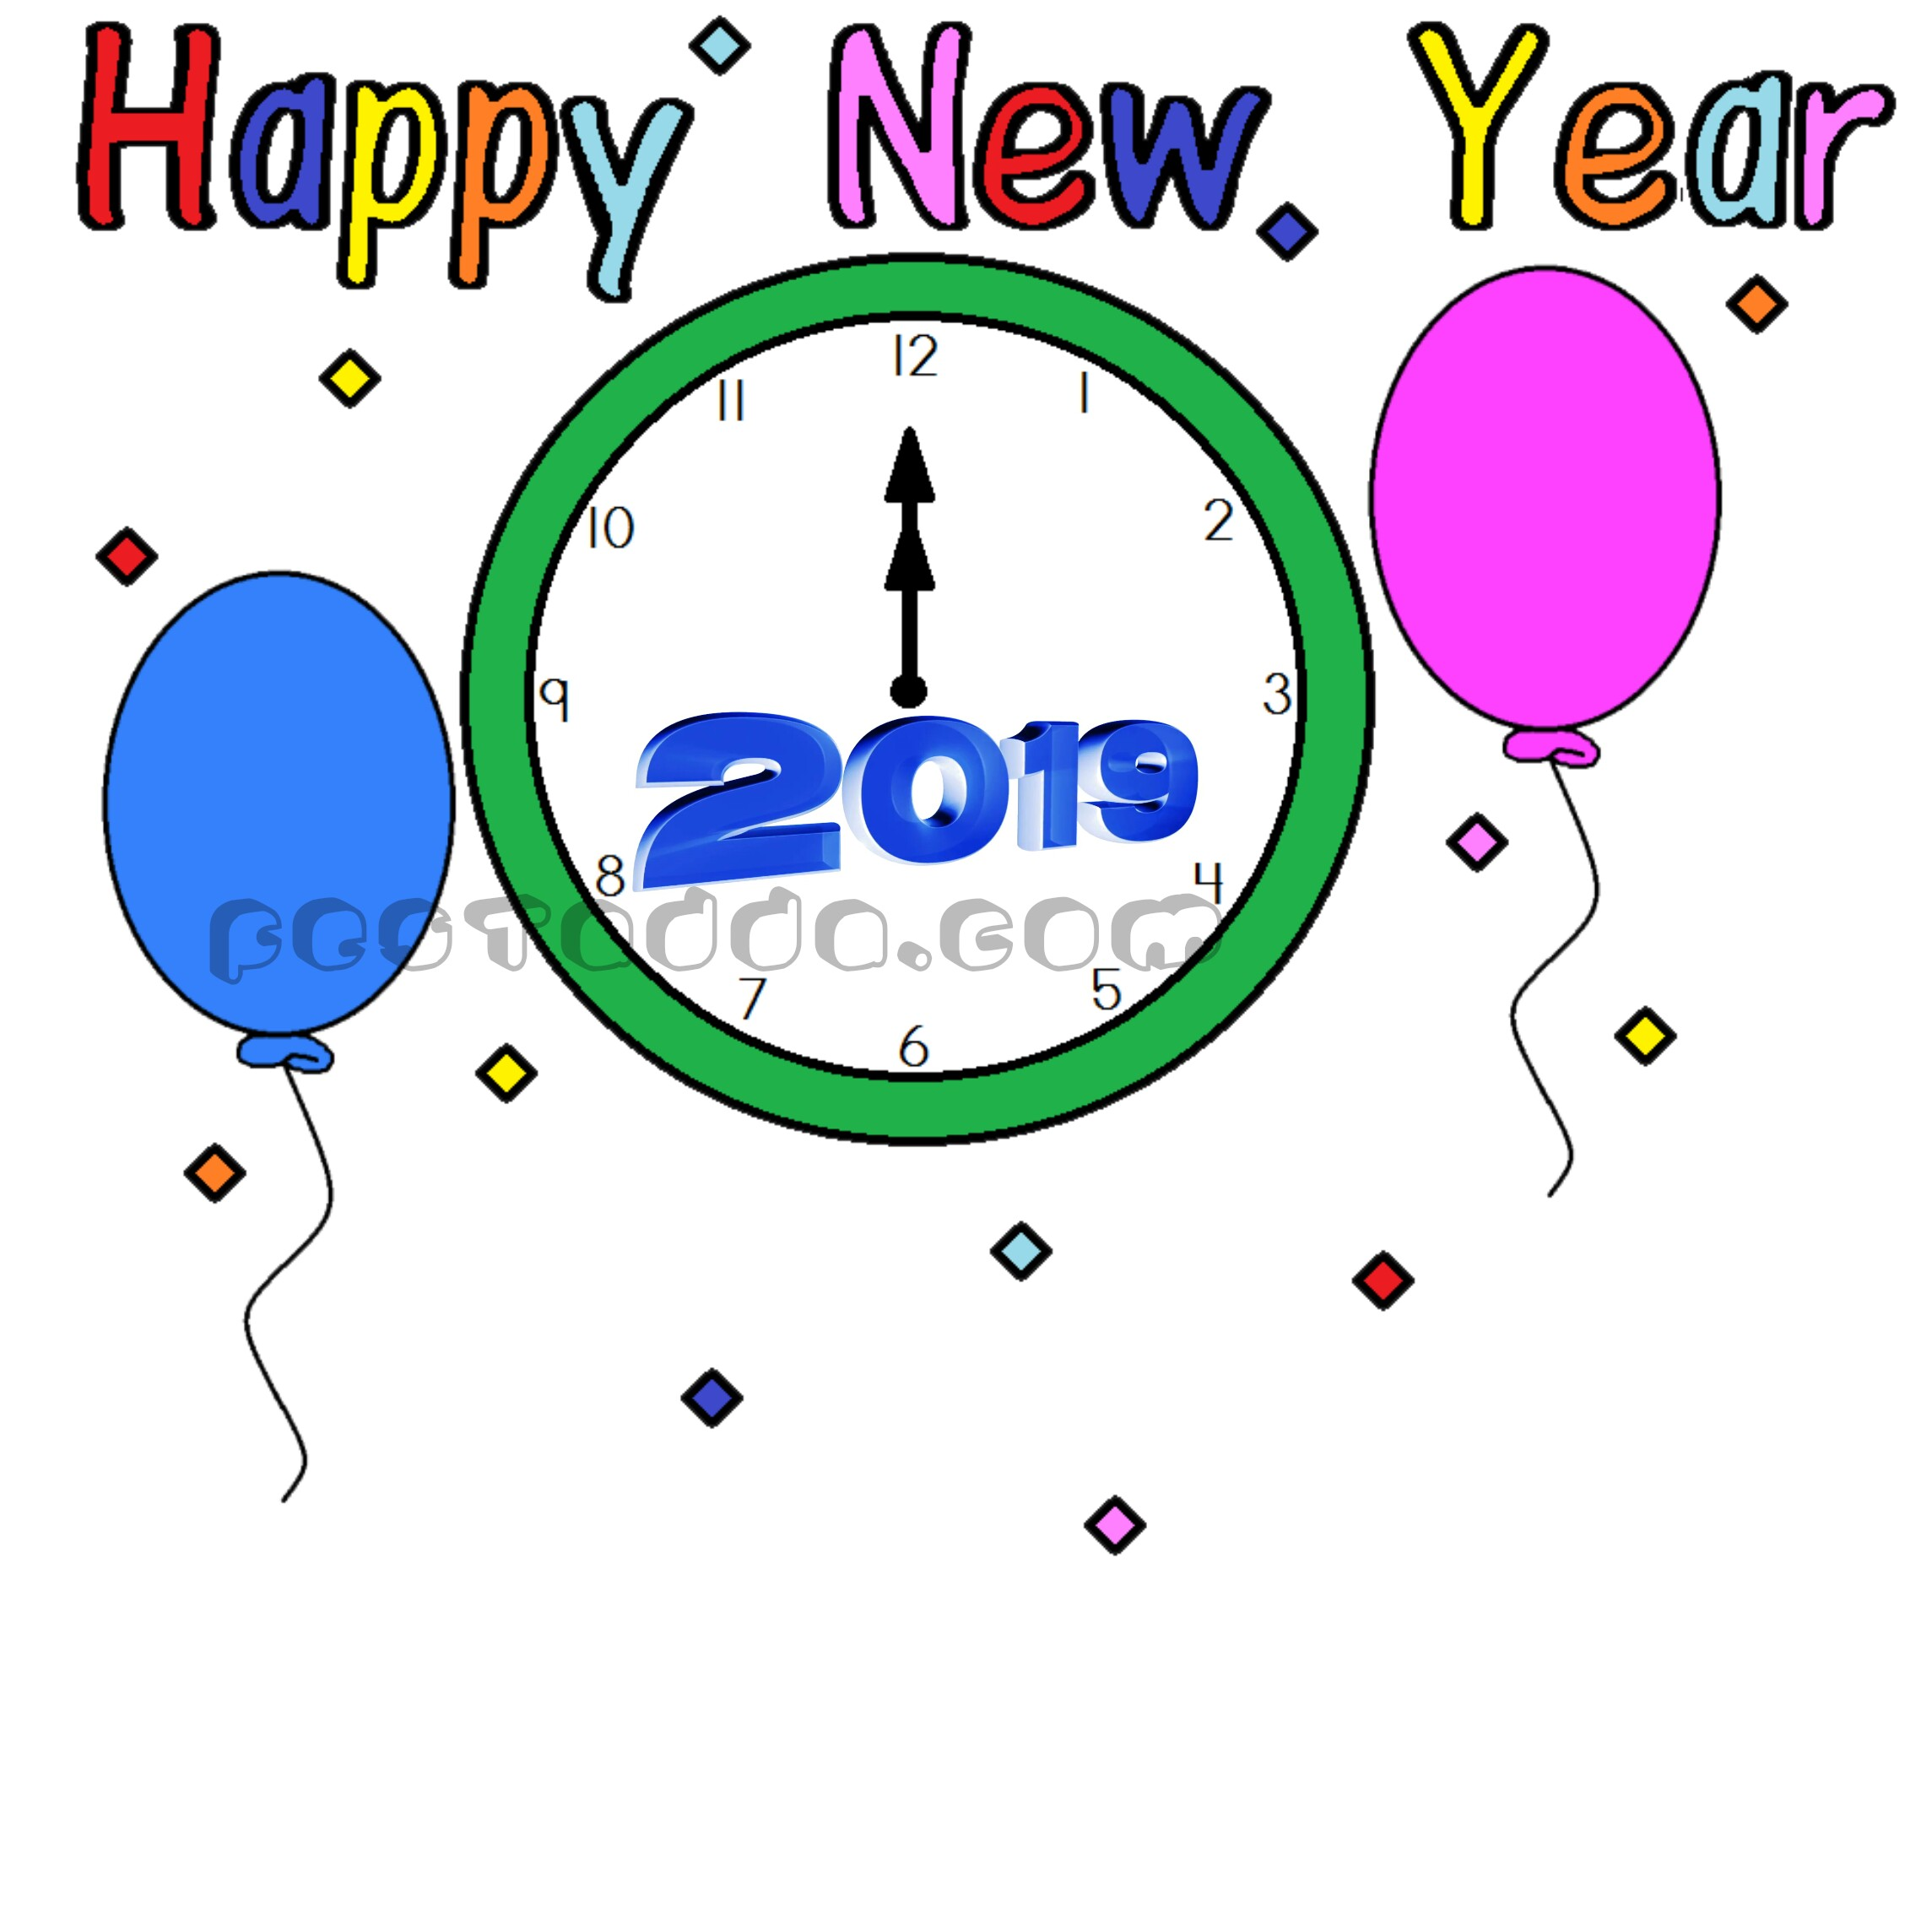 Free Happy New Year Clipart 2020 Images Pics For Whatsapp.